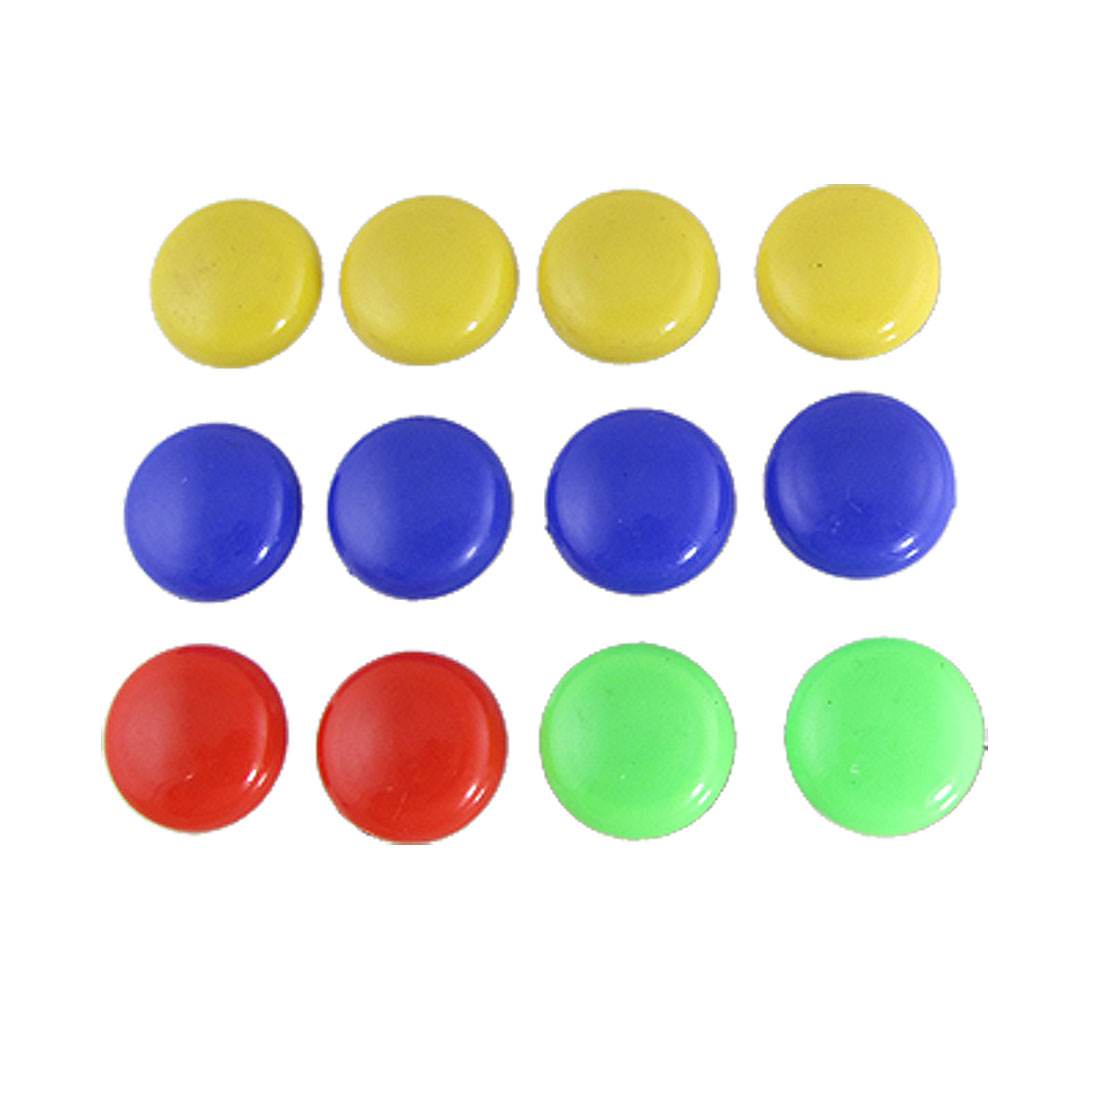 12 Pcs Round Plastic 4 Colors Whiteboard Refrigerator Magnets Decor